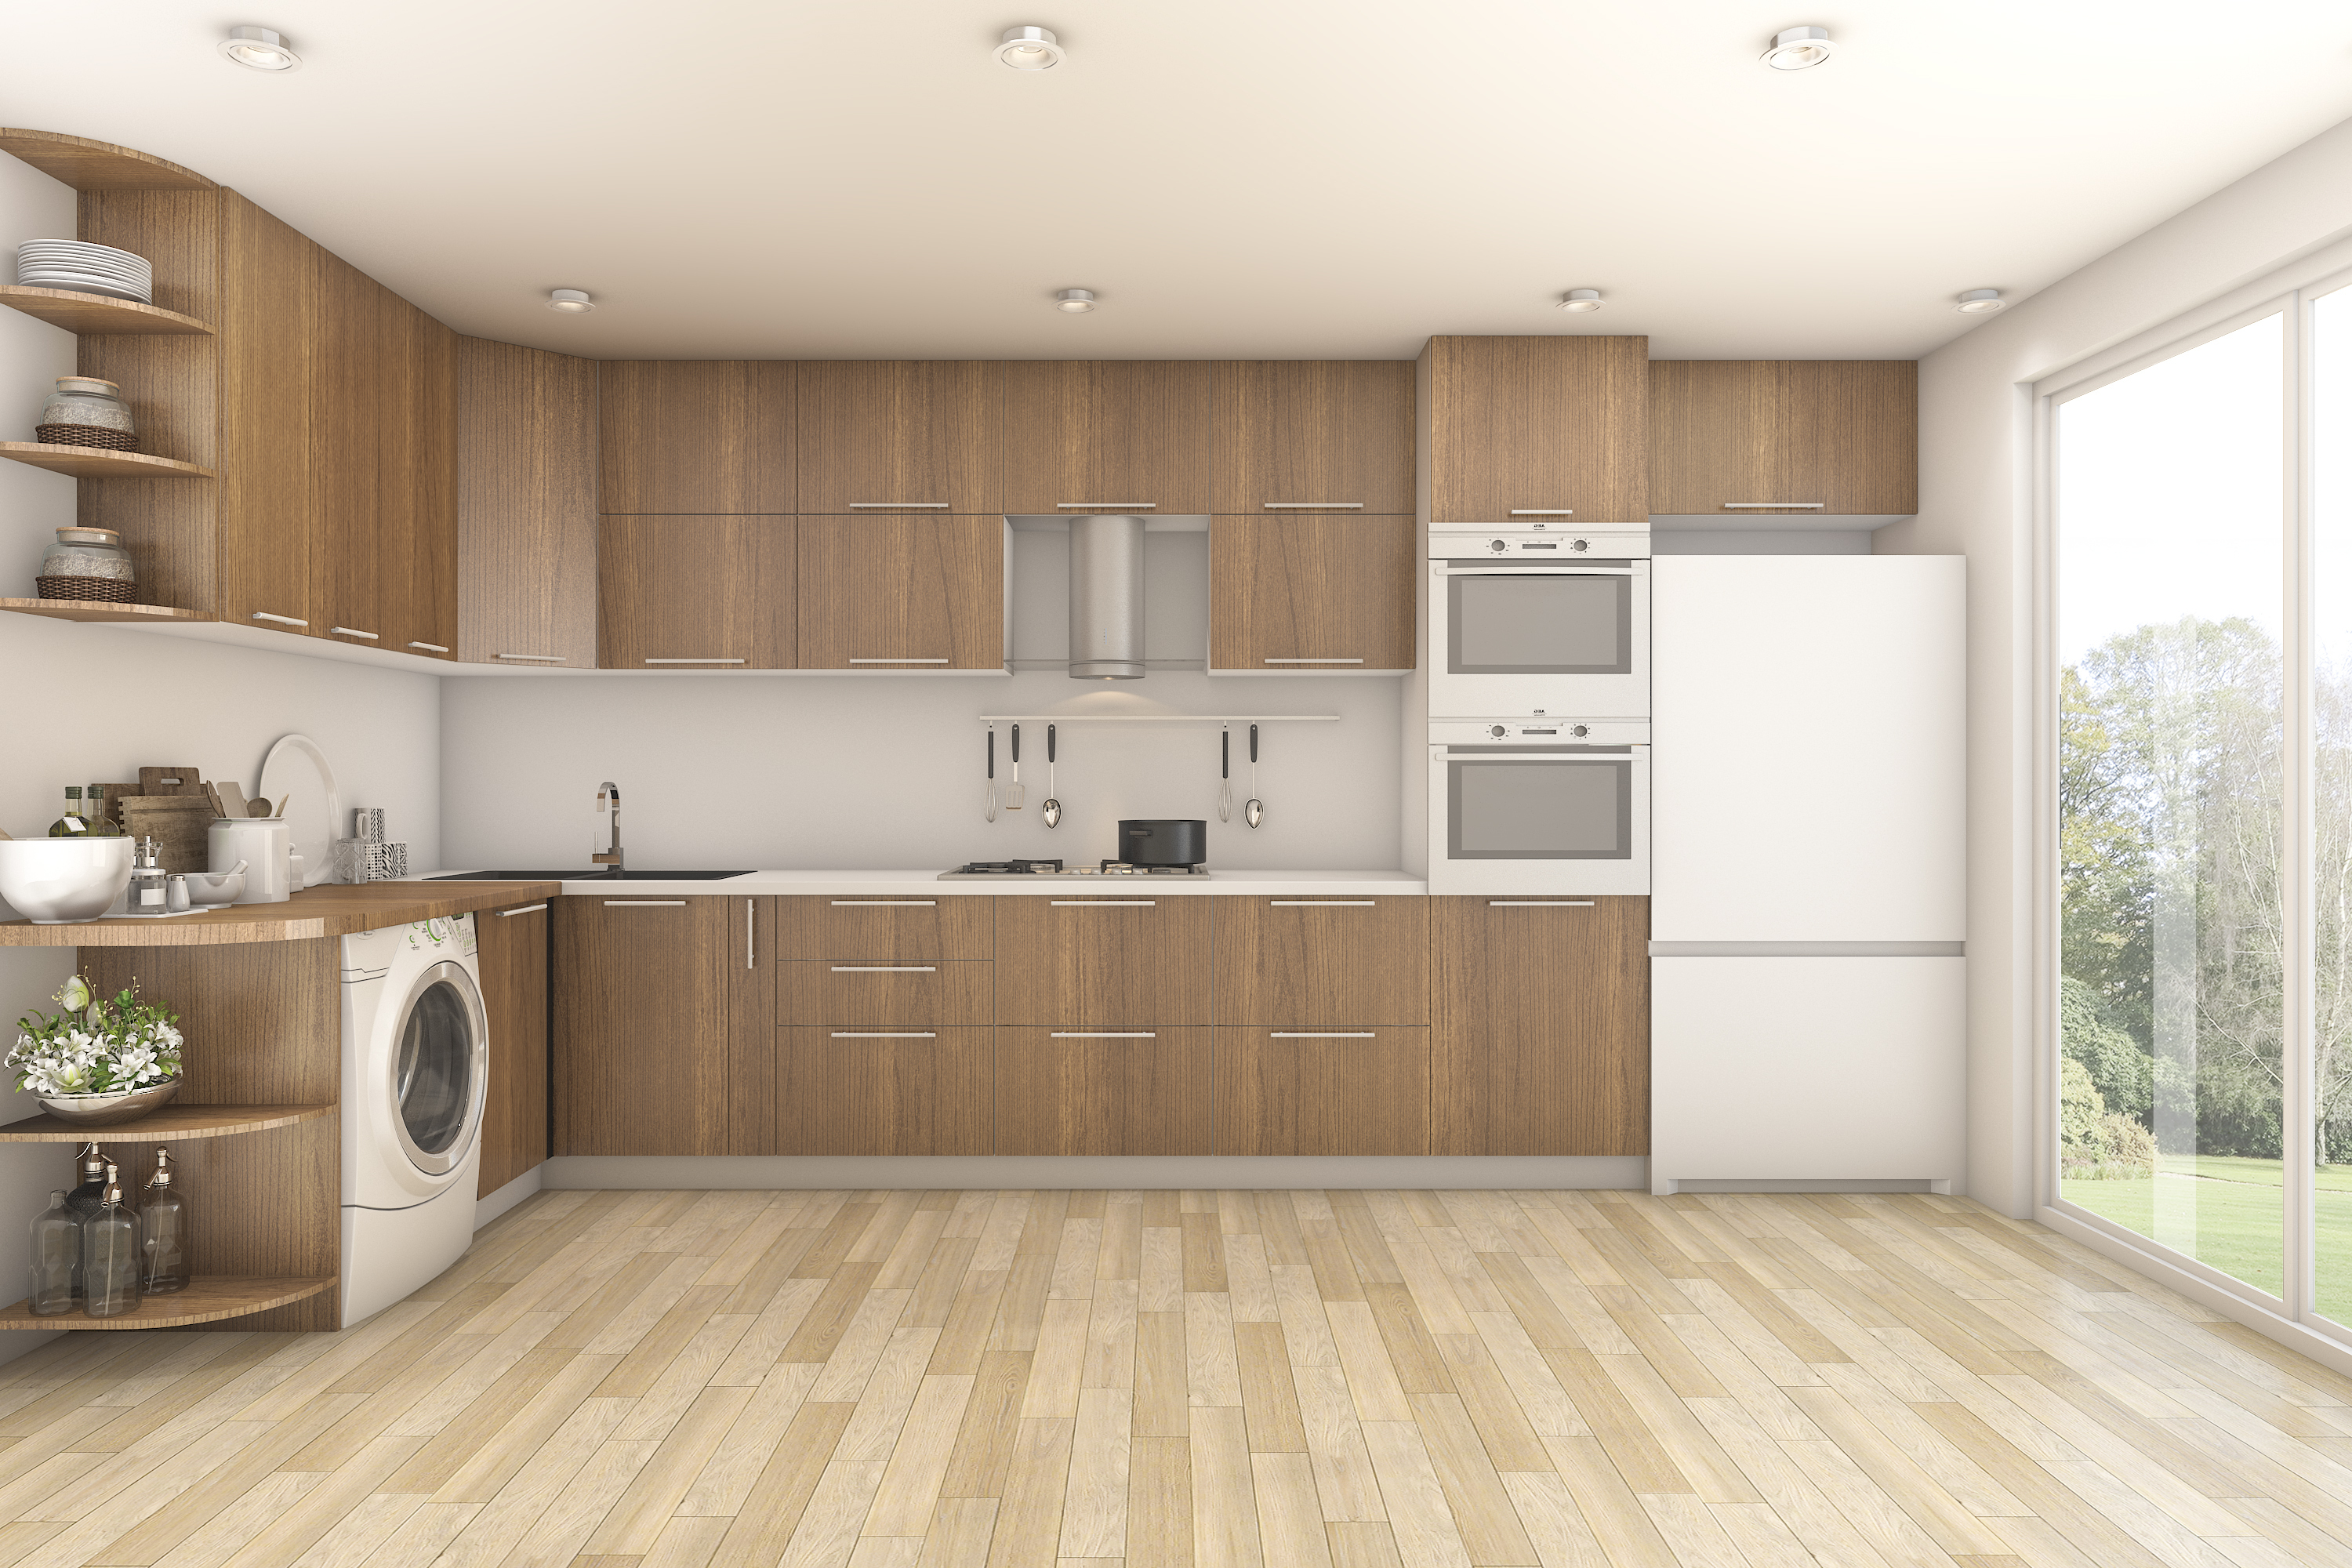 Kitchen Wise Pros And Cons Of Built In Kitchen Appliances